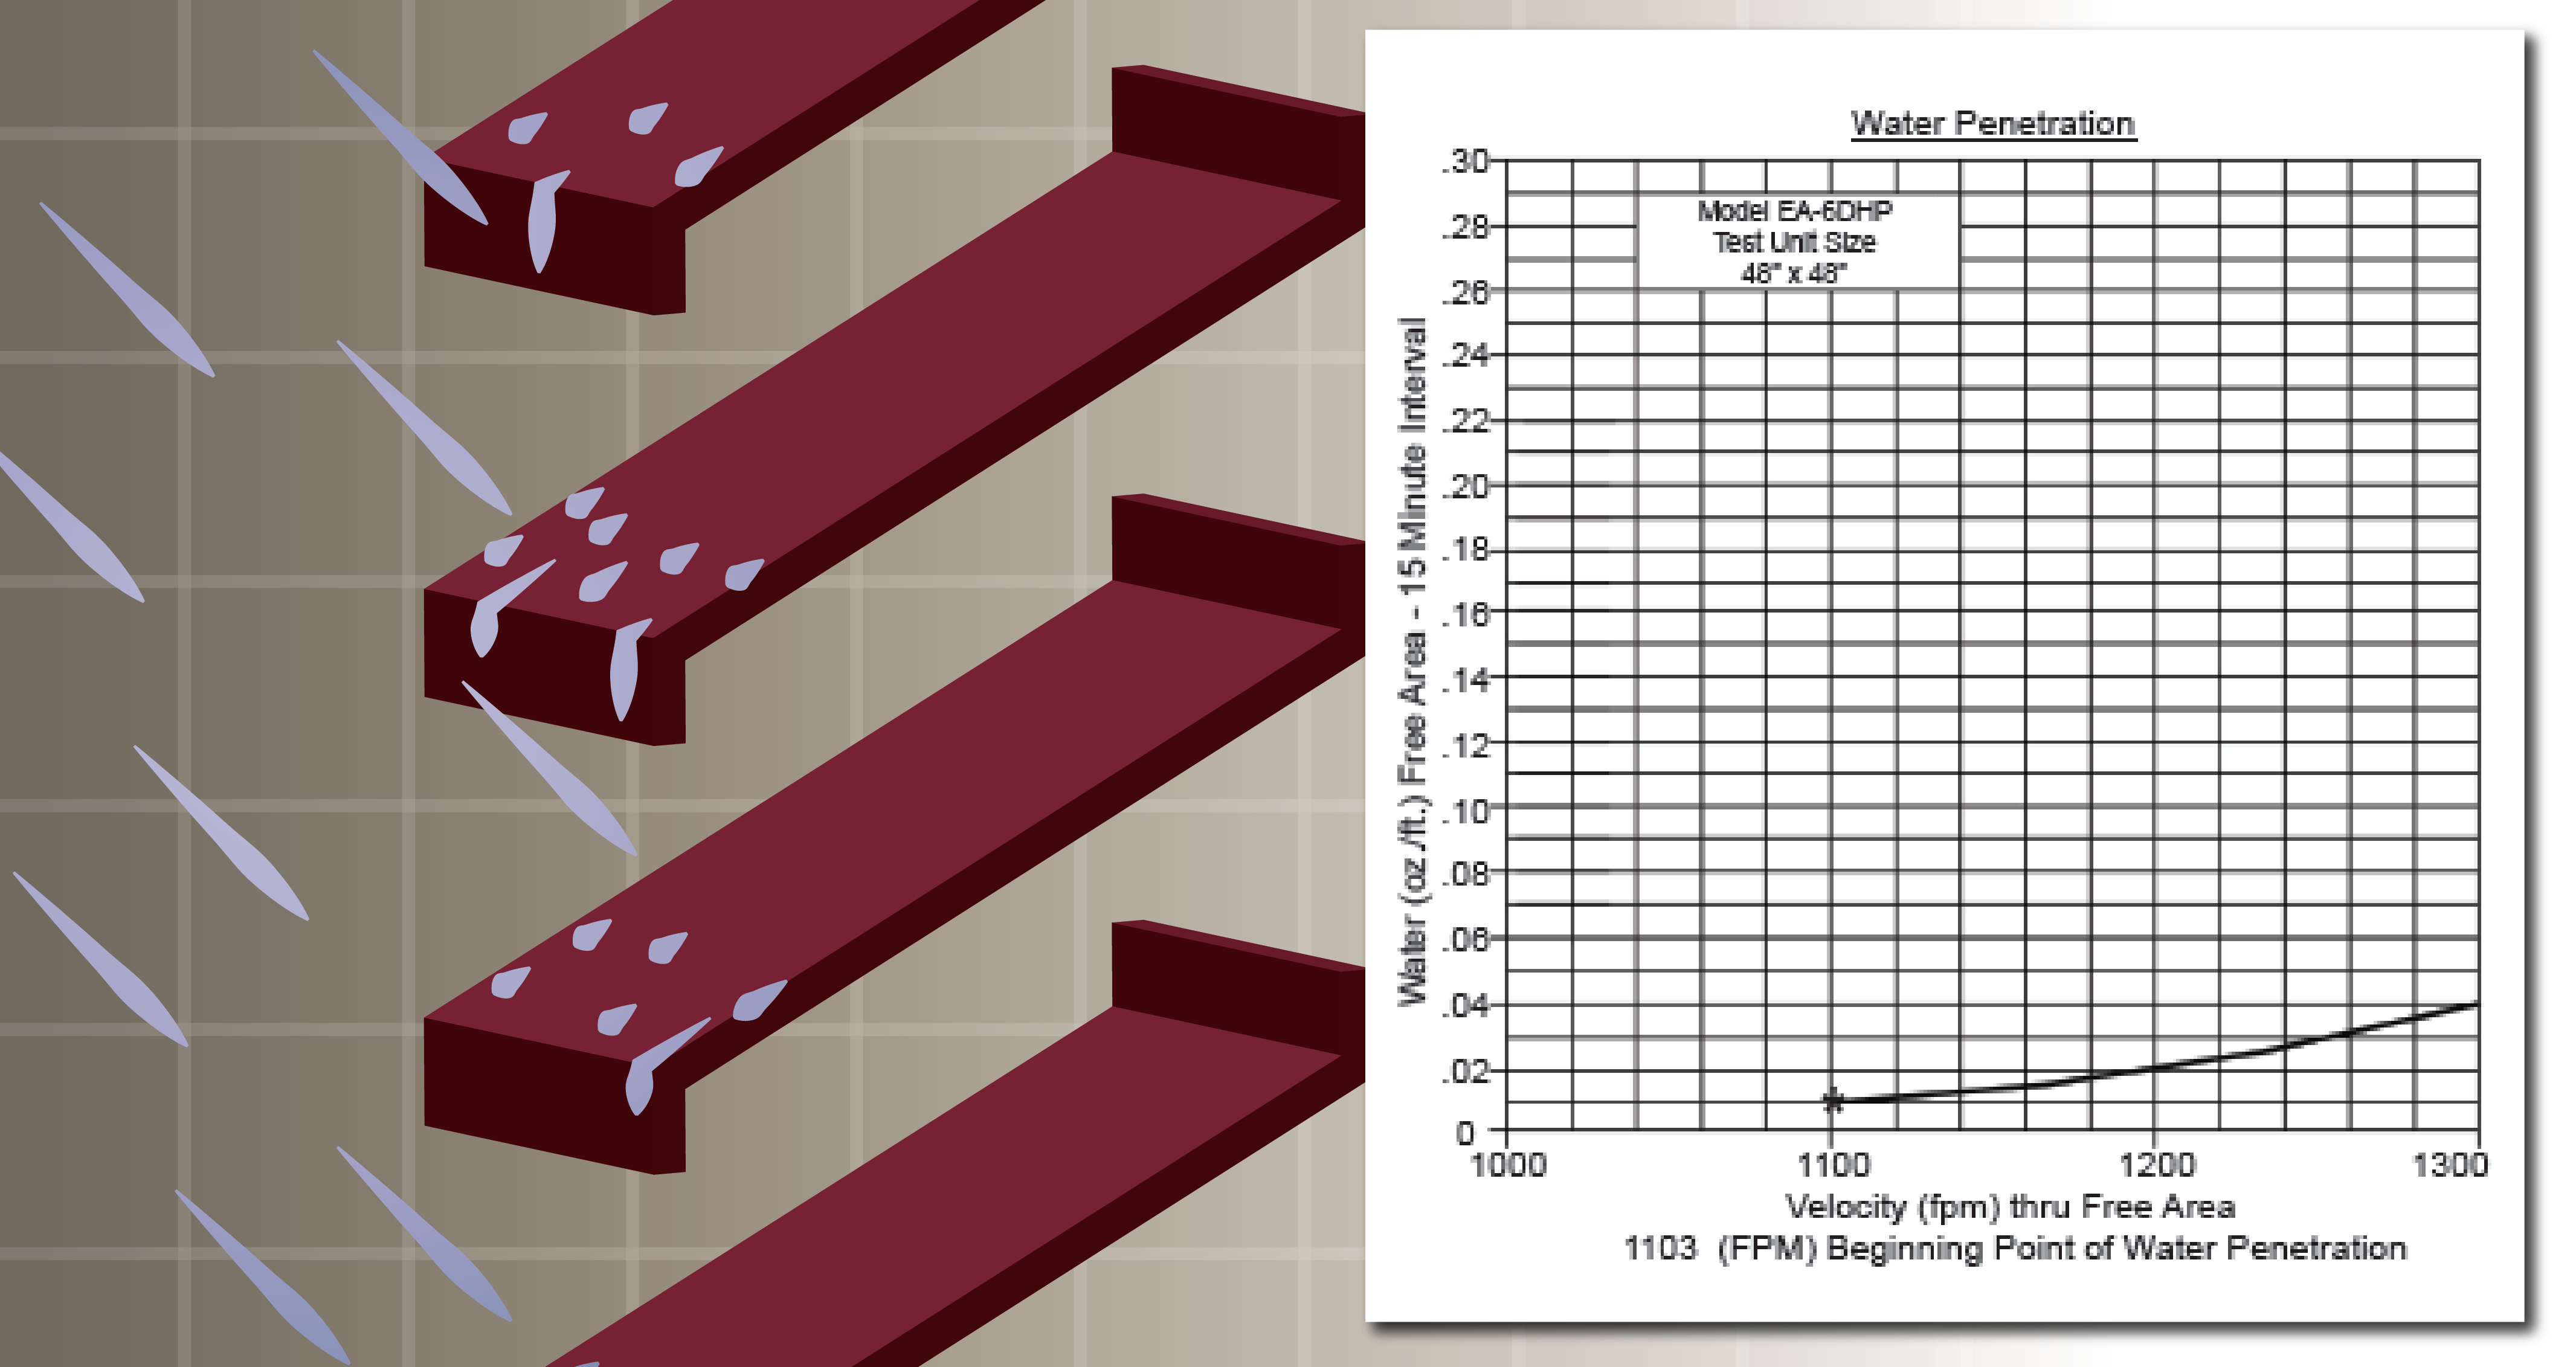 Water penetration refers to the louver's ability to reject rainfall, displayed as a curved line graph.